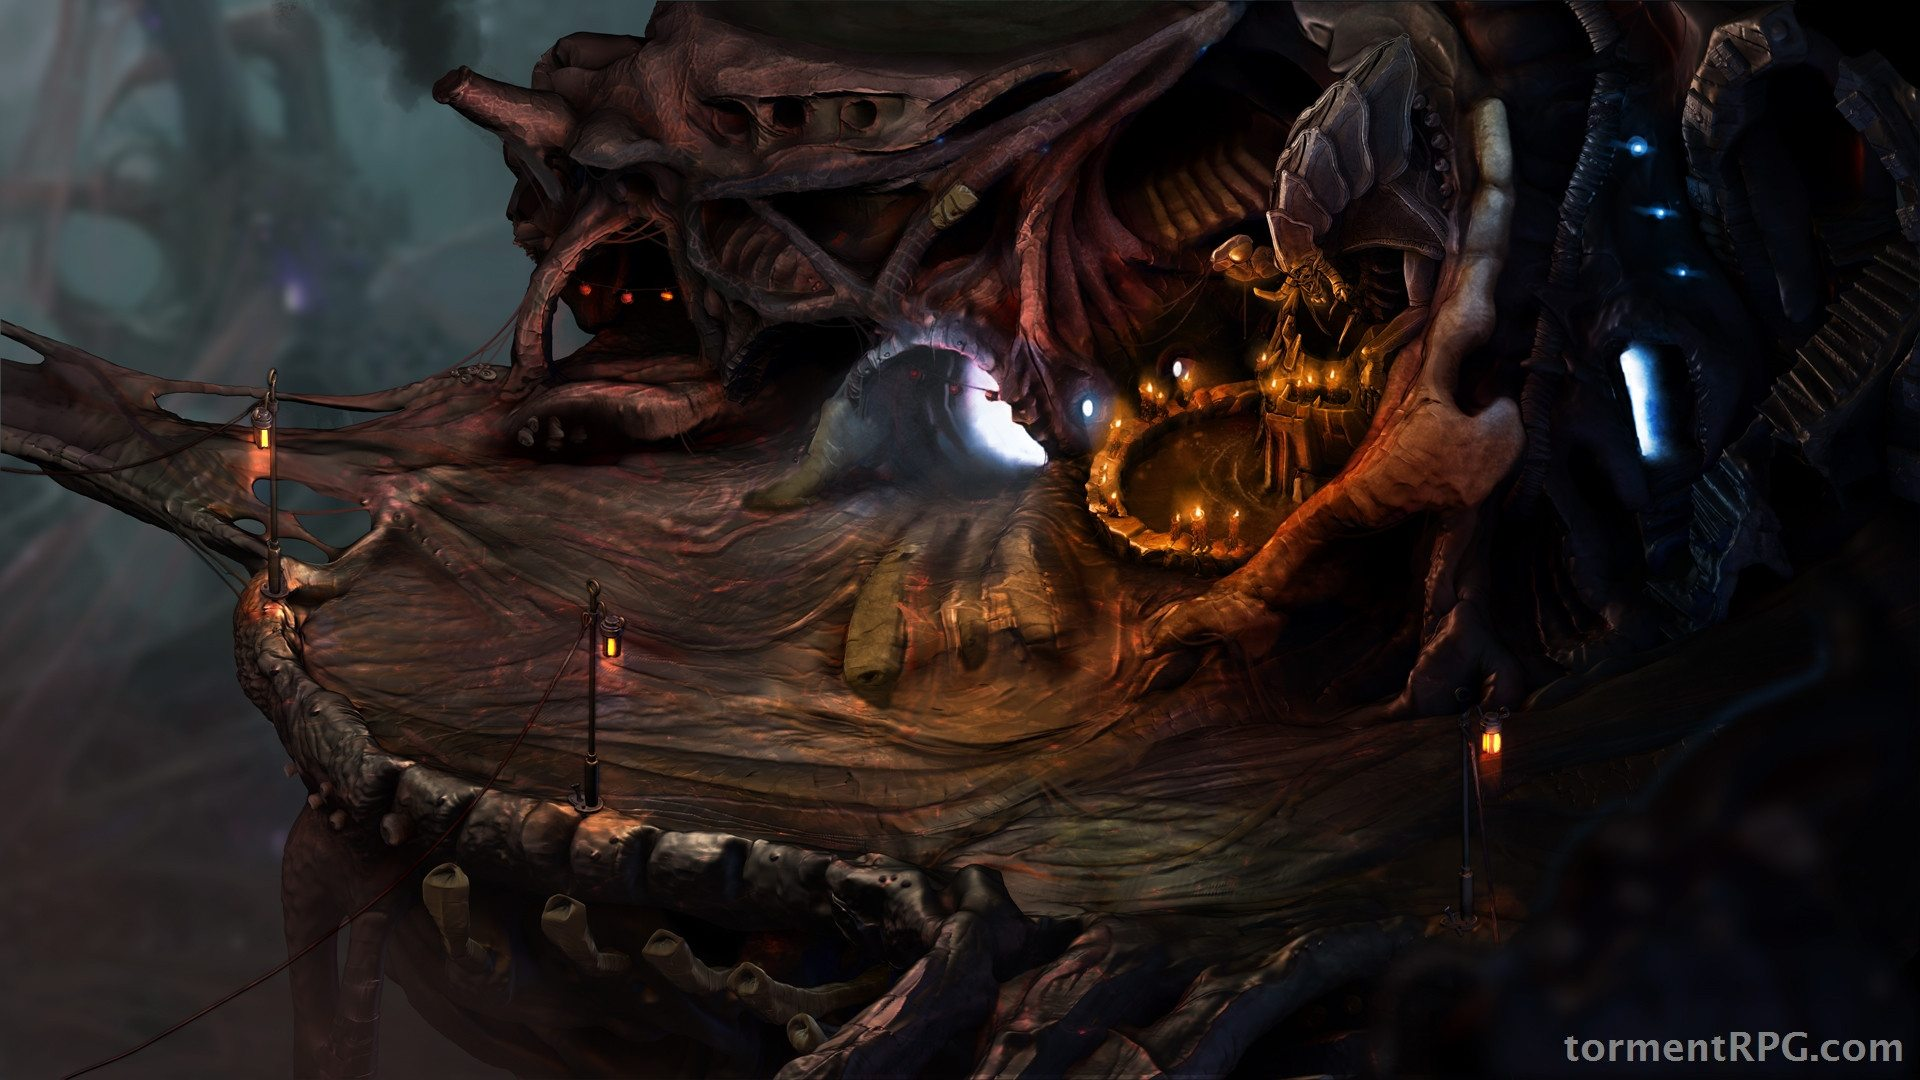 Torment: Tides of Numenera Publishing Deal Signed by Techland Publishing & inXile Entertainment